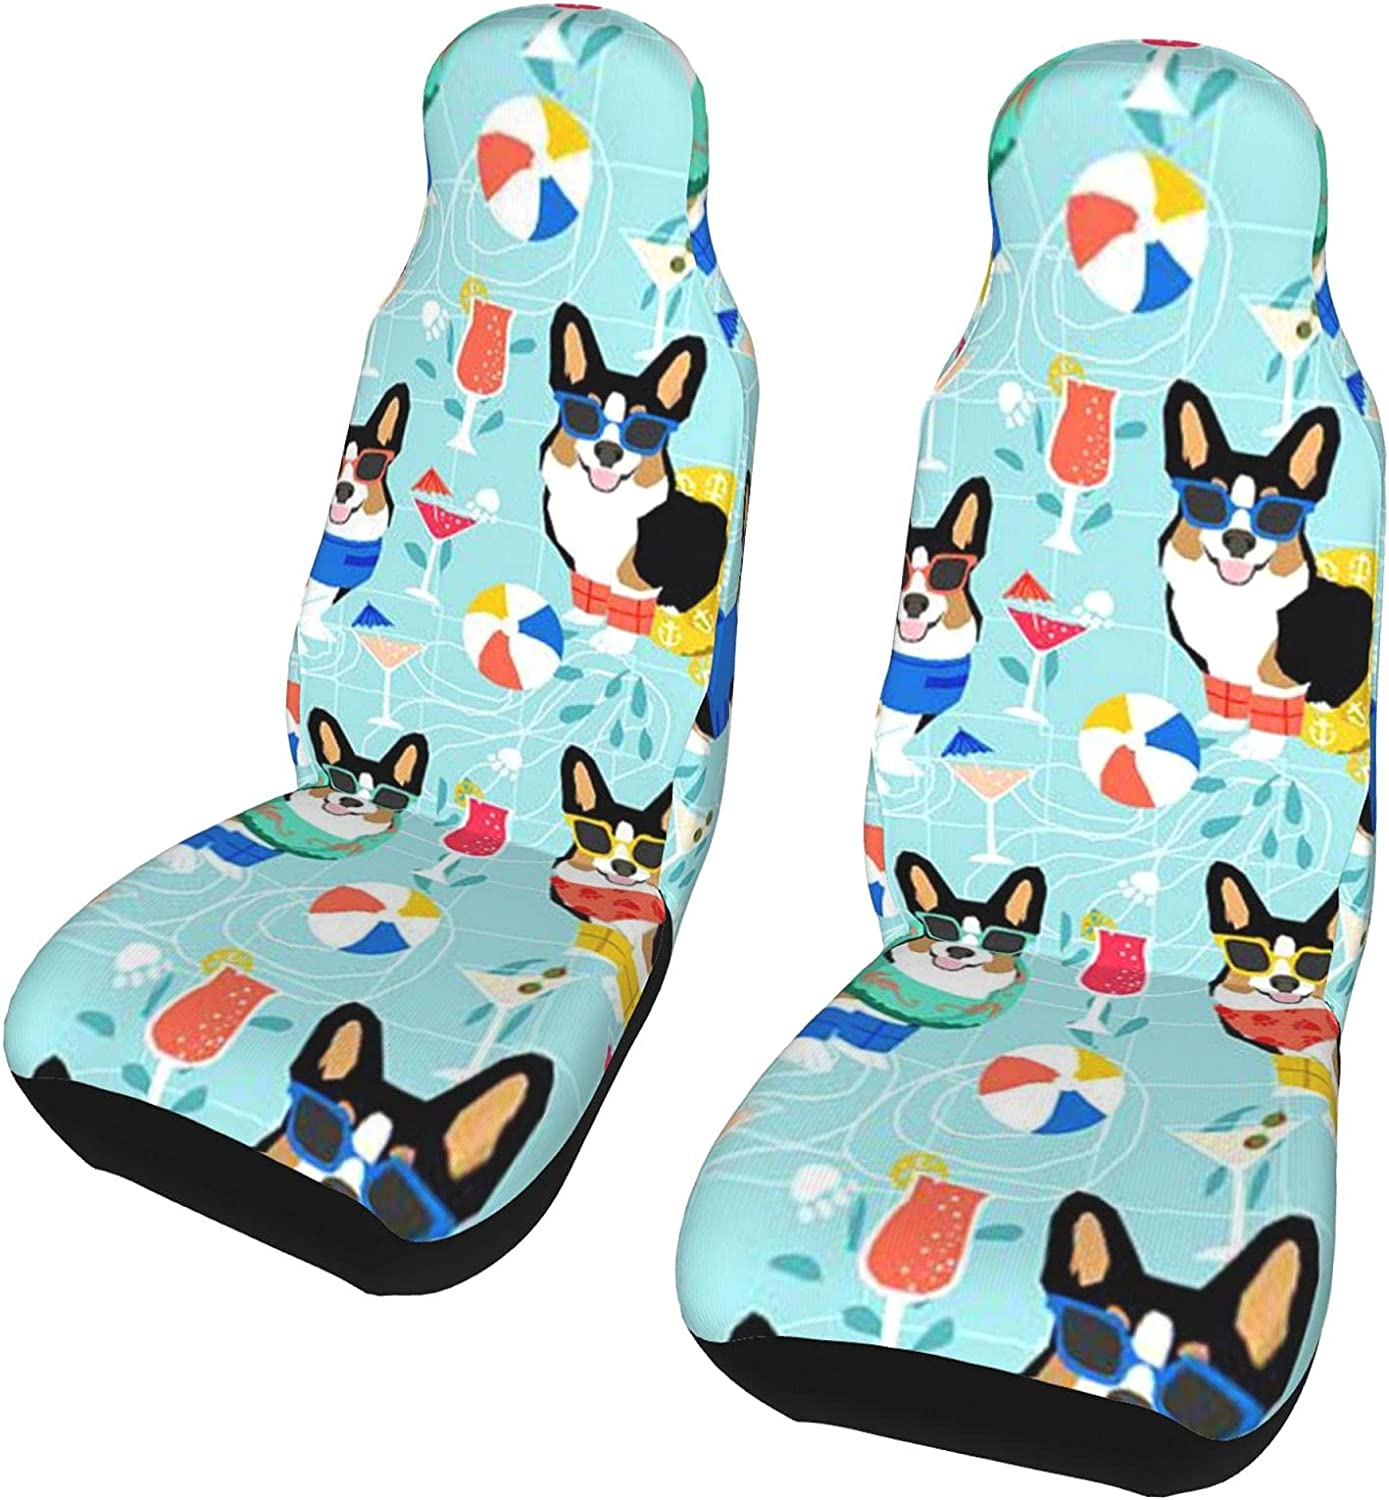 Outlet sale feature Augwinght Corgi Dog Sunglasses Swim Seat Covers Max 61% OFF Front Circle Car